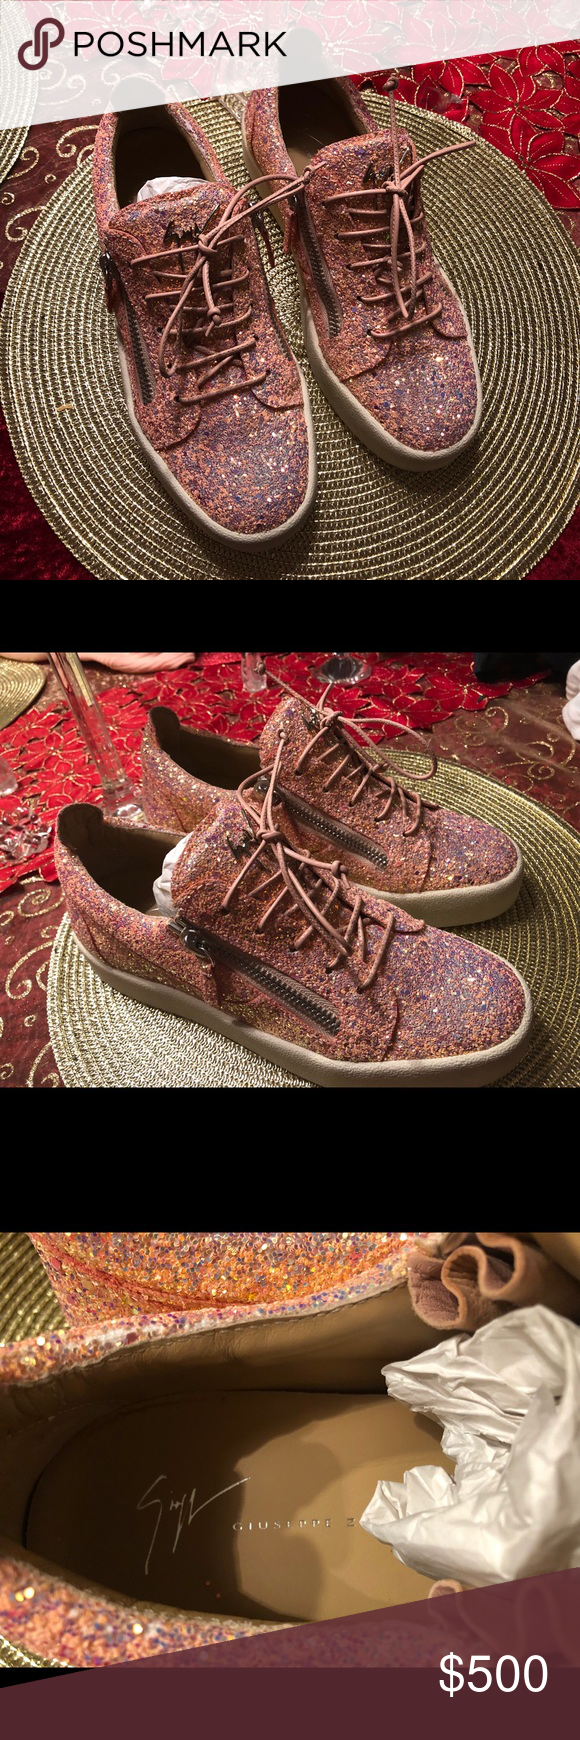 1f2426b8cc6 Giuseppe zanotti shoes May Coarse Glitter Platform Sneakers Barbie color Shoes  Sneakers